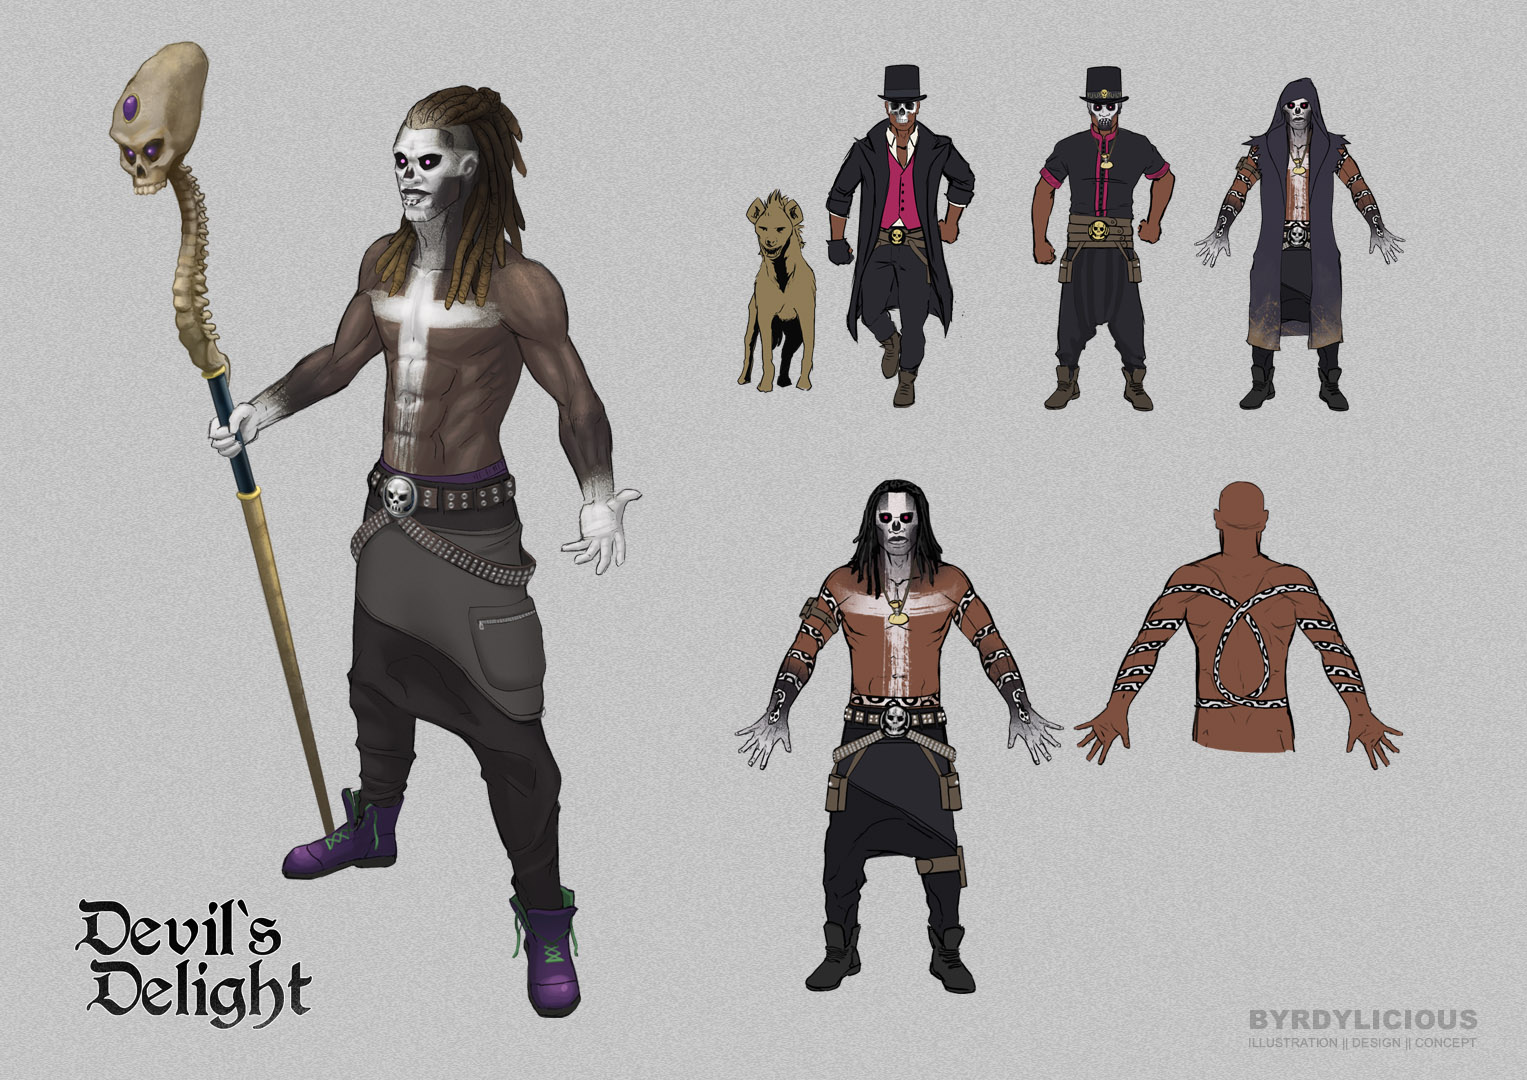 voodoo accessoires character design concept art byrdylicious